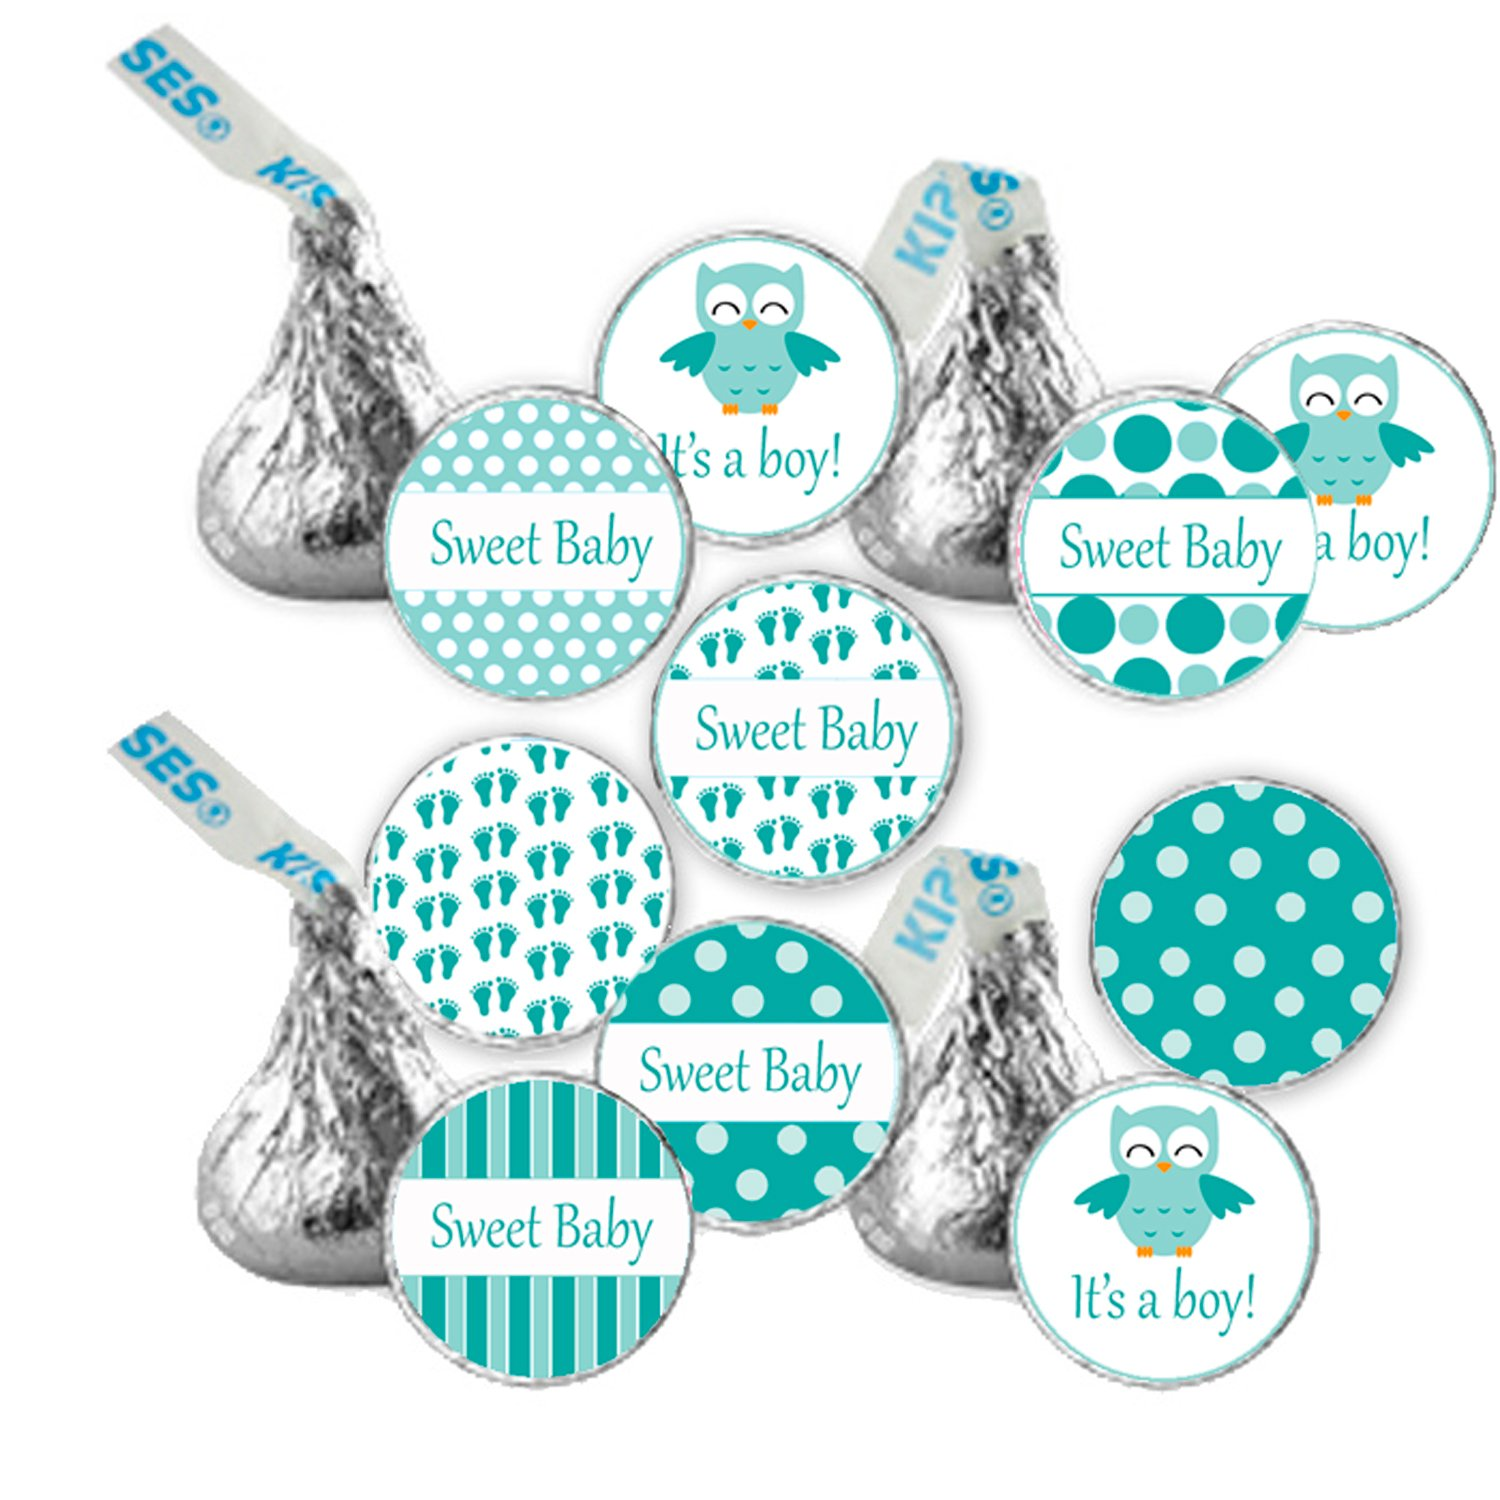 Hershey kiss stickers printable personalized cute green owl baby shower boy labels